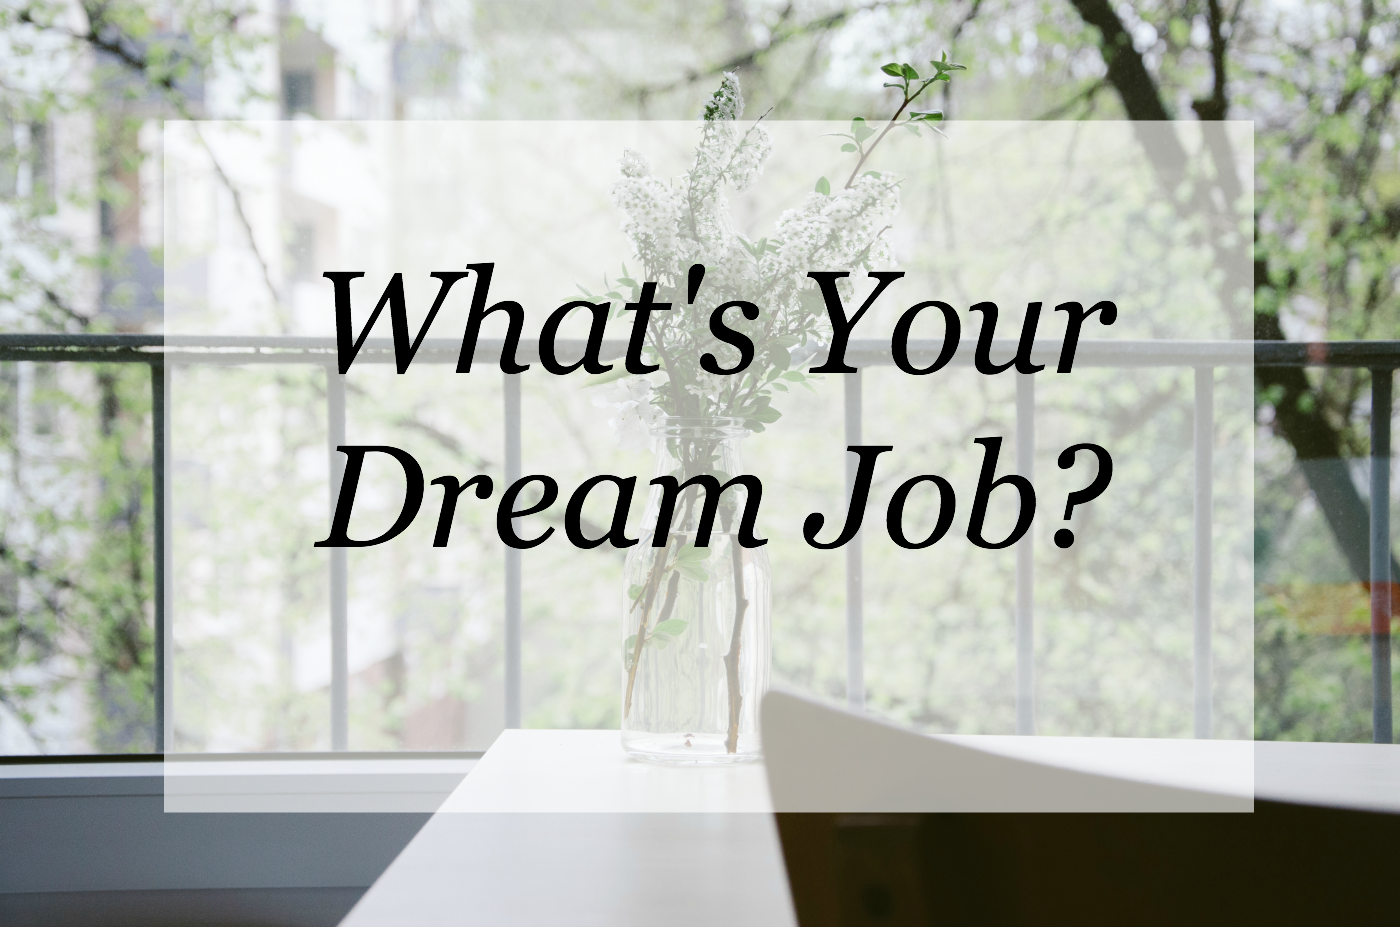 melissa faye dream job what would your dream job be i asked myself this question quite a bit in recent months no i am not leaving my current job and i am so thankful to have